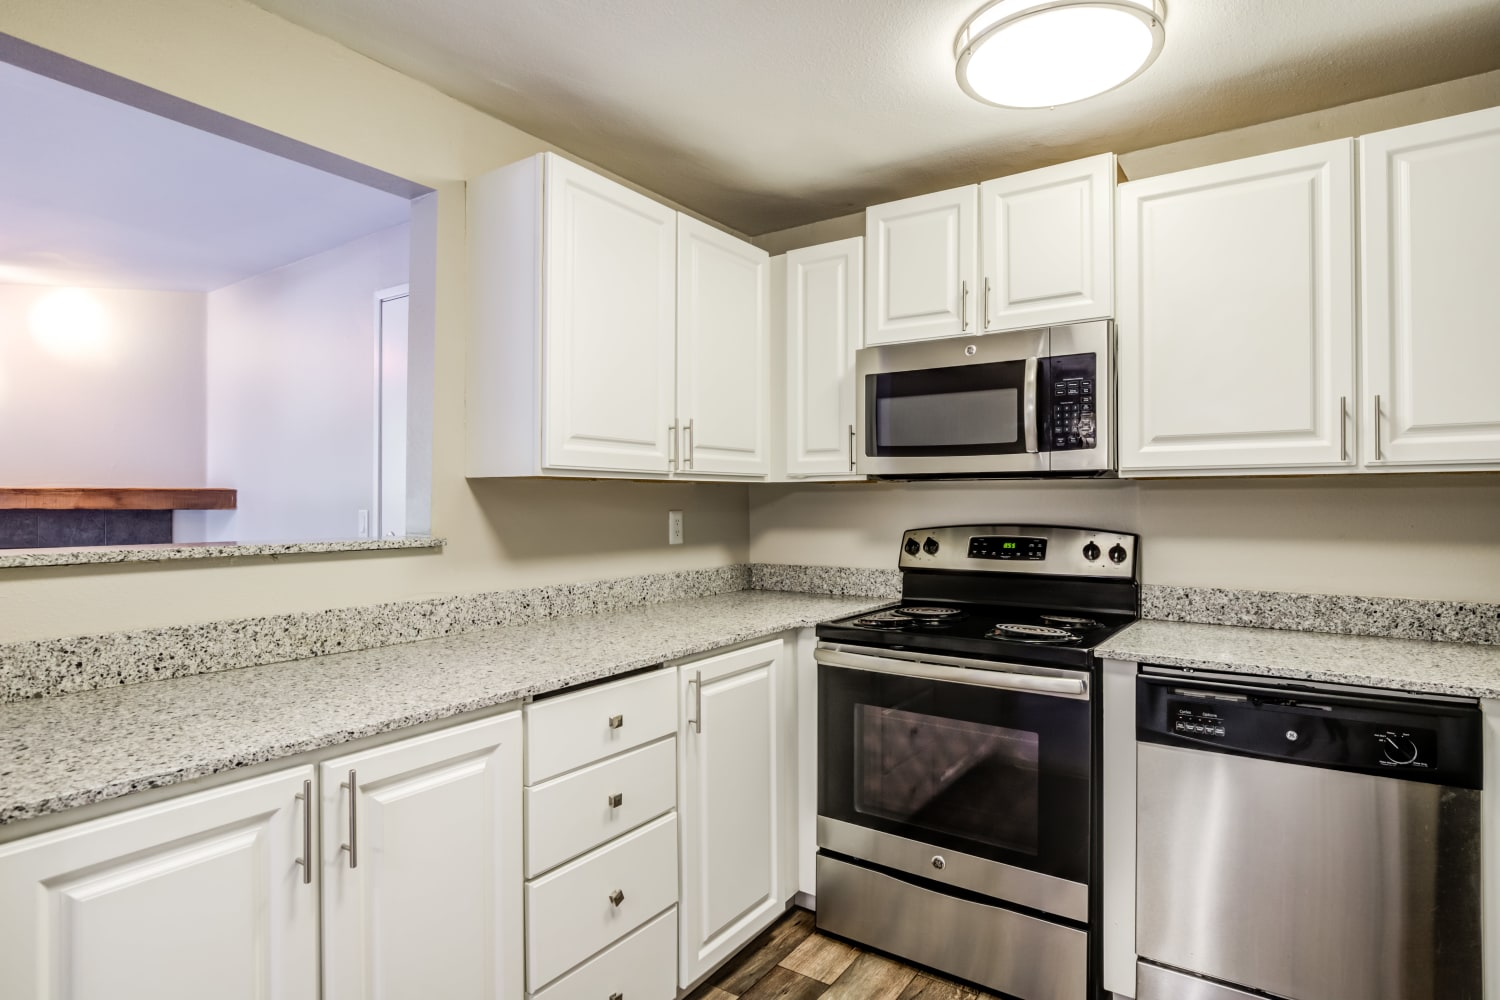 Modern Kitchen with stainless steel appliances and ample countertop space at Campbell Run Apartments in Woodinville, Washington